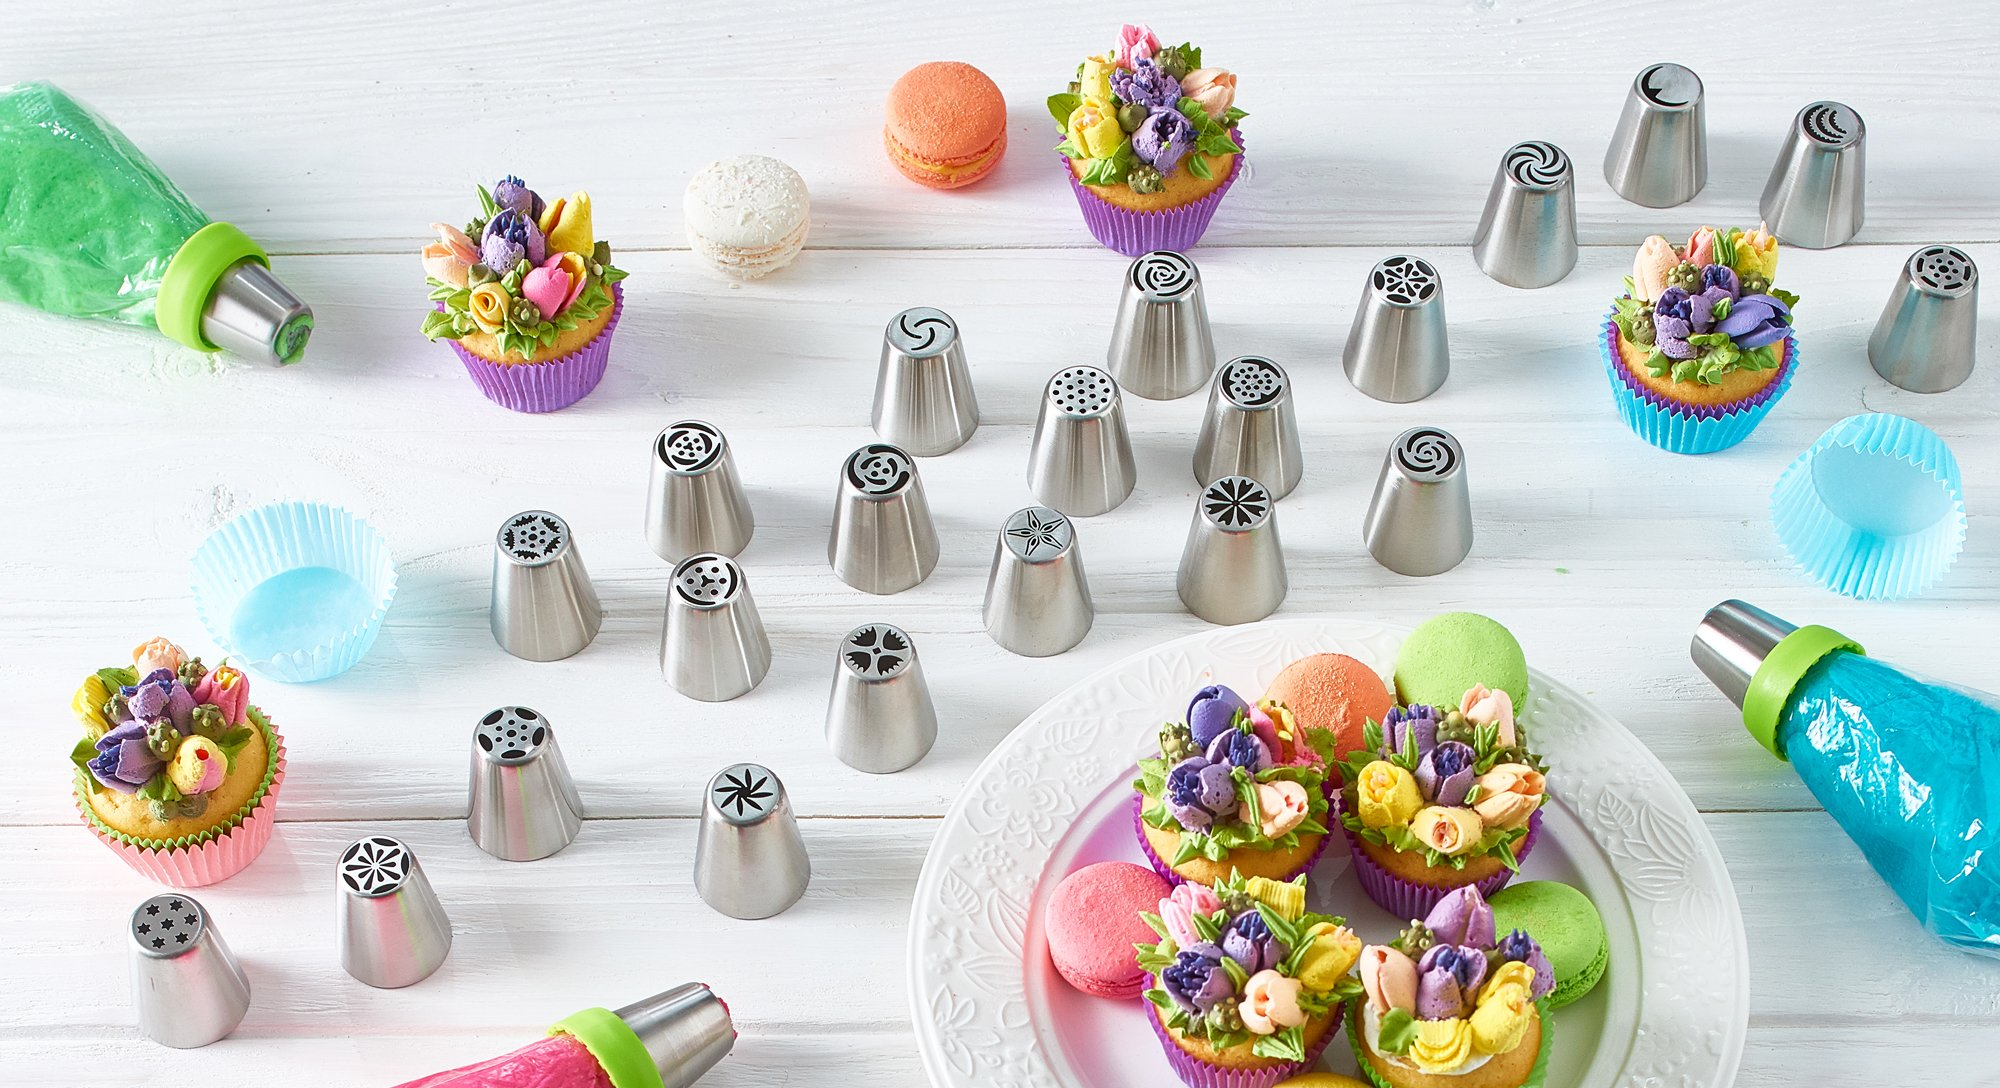 Russian Piping Tips - Cake Decorating Supplies - 39 Baking Supplies Set - 23 Icing Nozzles - 15 Pastry Disposable Bags & Coupler - Extra Large Decoration Kit - Best Kitchen Gift by Braviloni (Image #8)